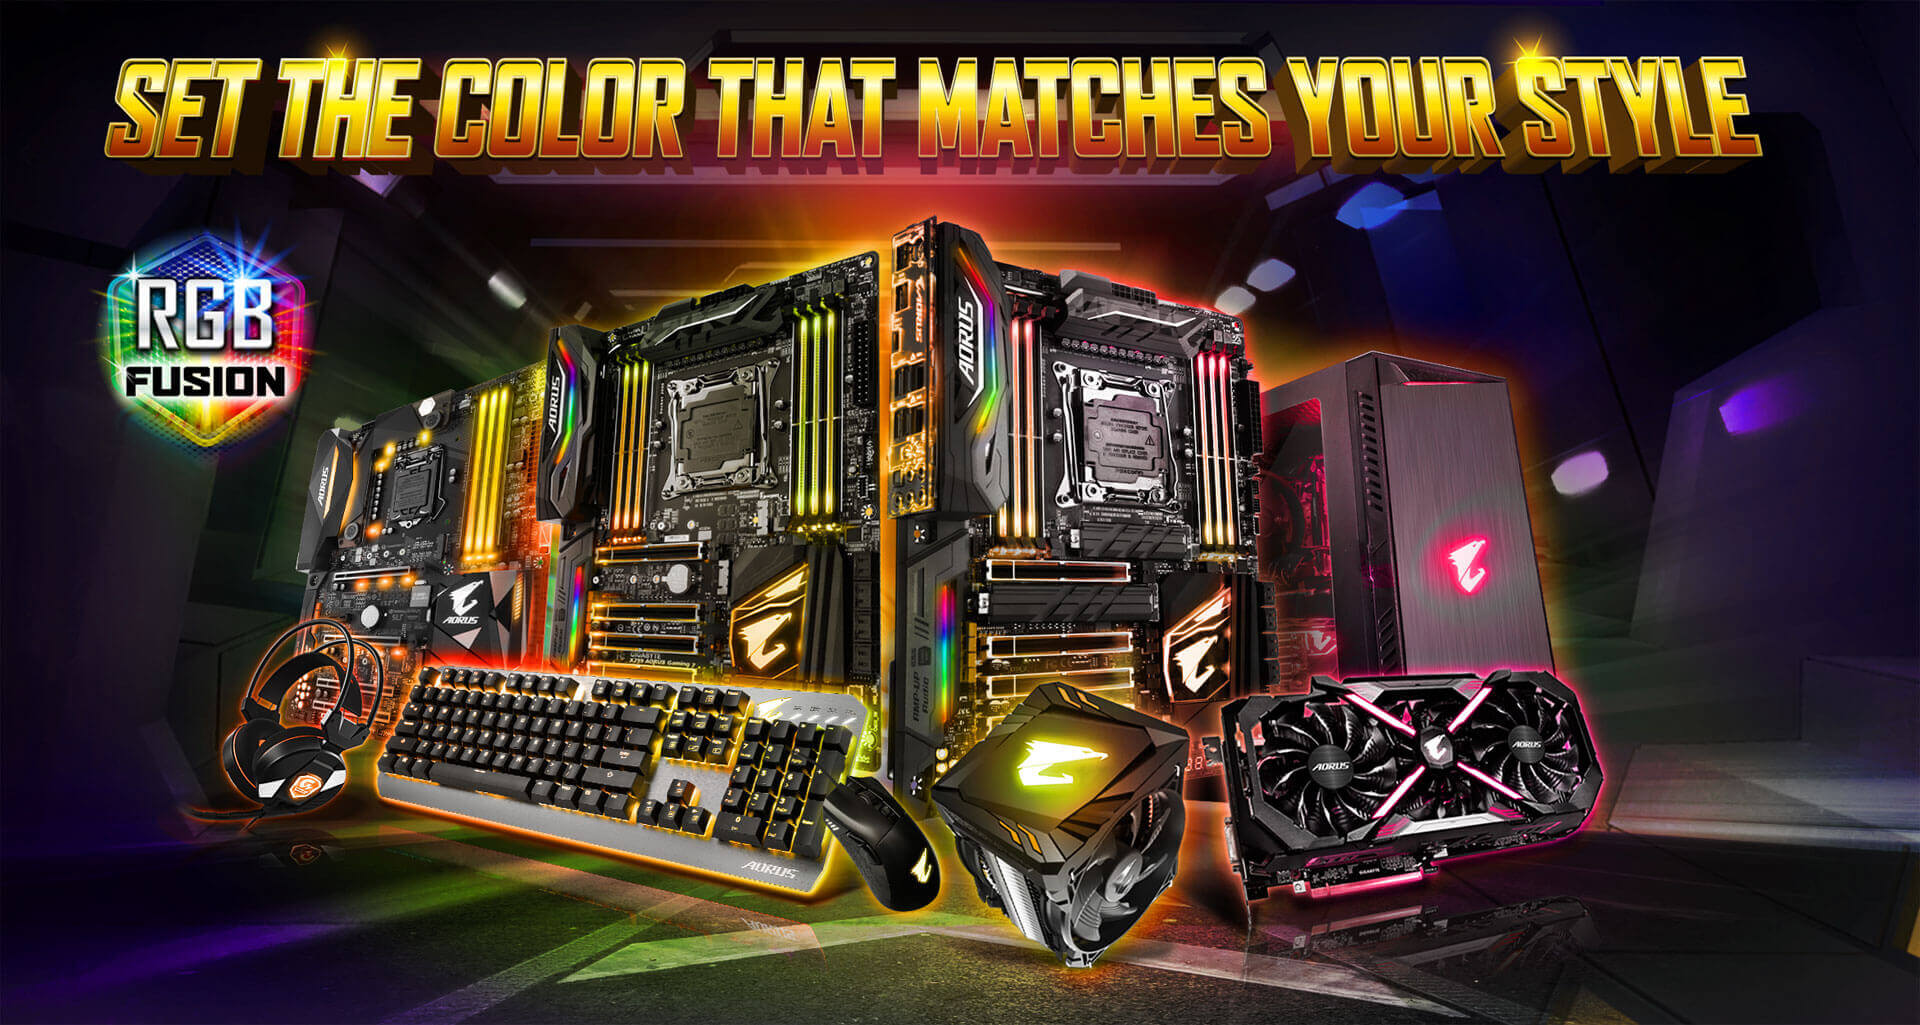 Z370 Aorus Gaming 3 Rev 10 Motherboard Gigabyte Global Two Way Lighting Diagram With A Dazzling Array Of Products Supported Rgb Fusion Is The Software That Brings It All Together Letting Your Accessories Synchronize To Same Beat